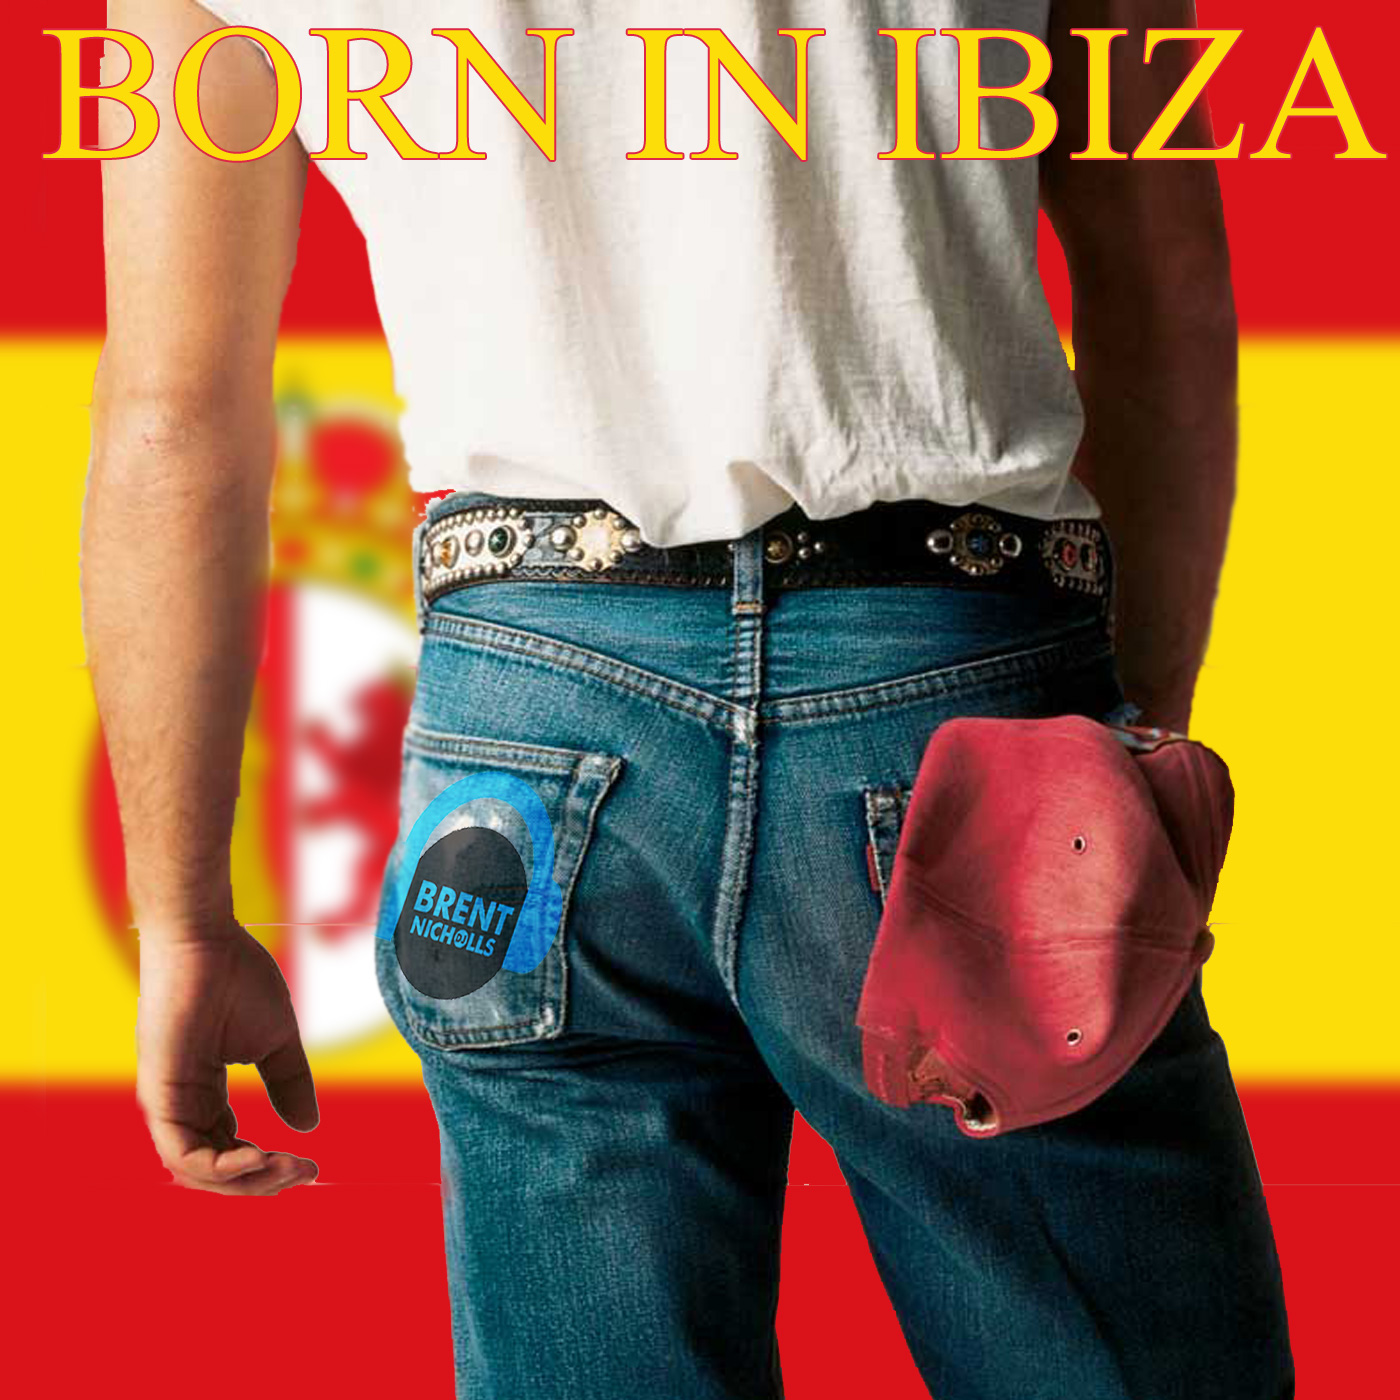 PODCAST: BORN IN IBIZA